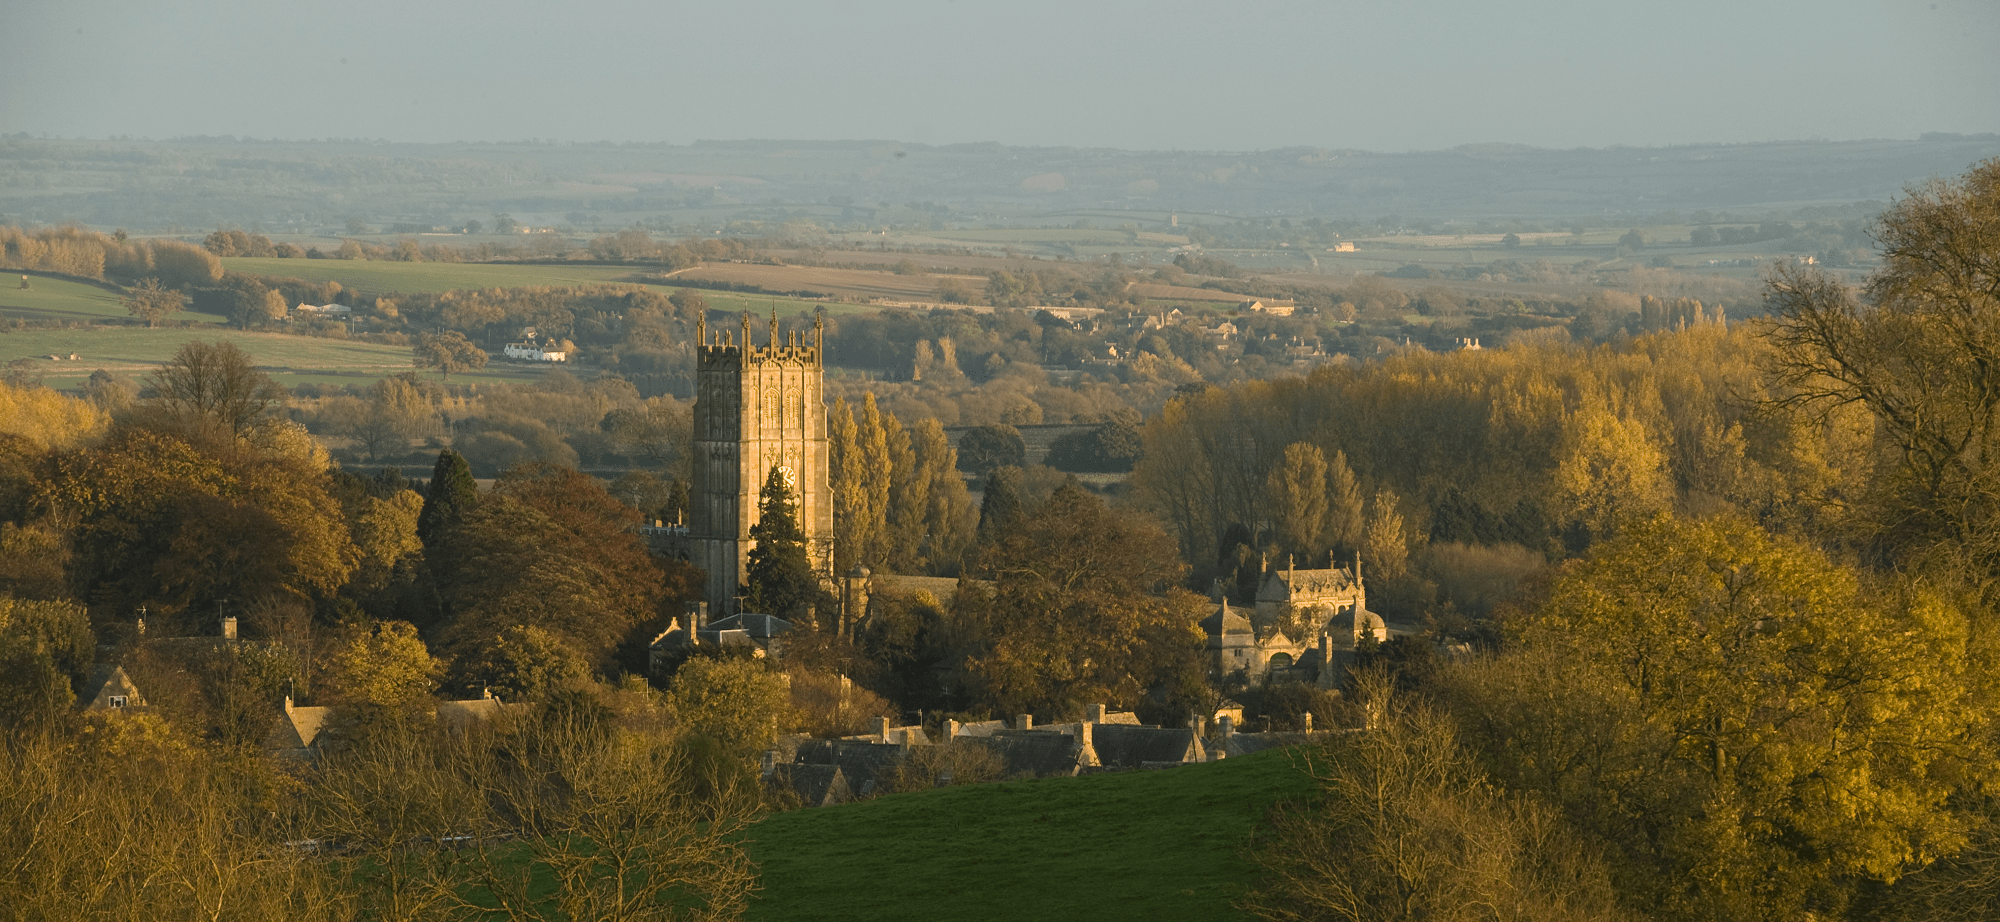 The town of Winchcombe